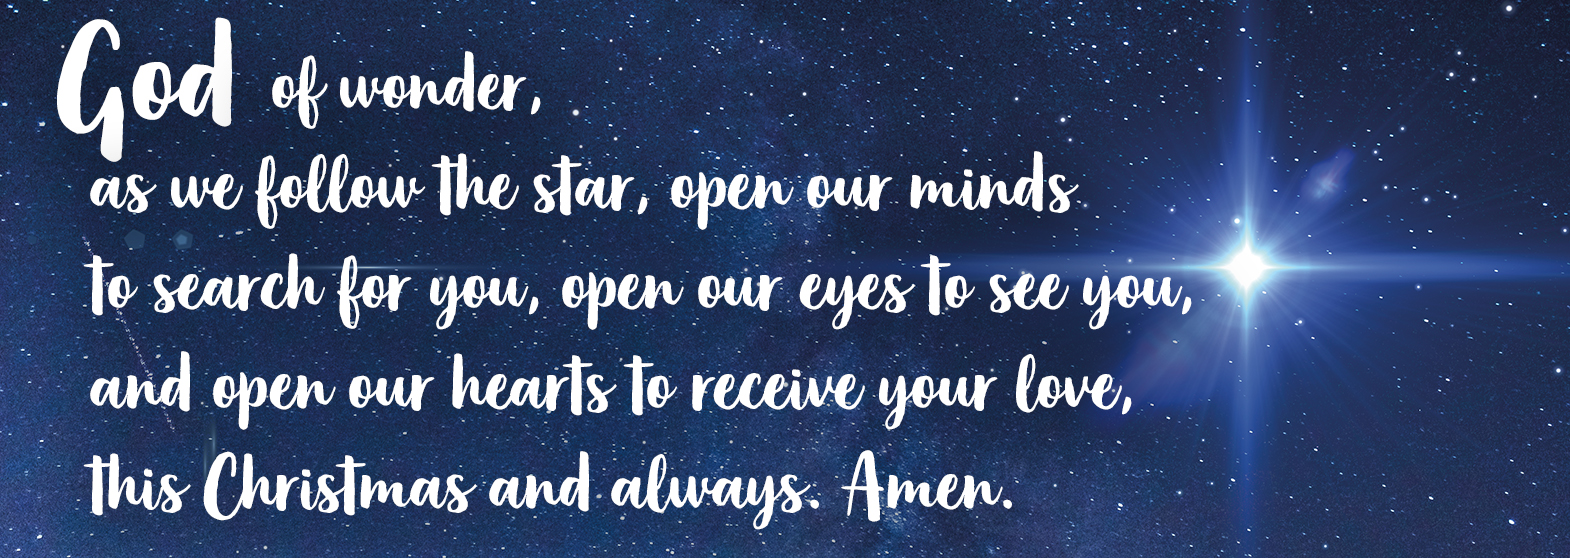 God of wonder, as we follow the star, open our minds to search for you, open our eyes to see you, and open our hearts to receive your love, this Christmas and always. Amen